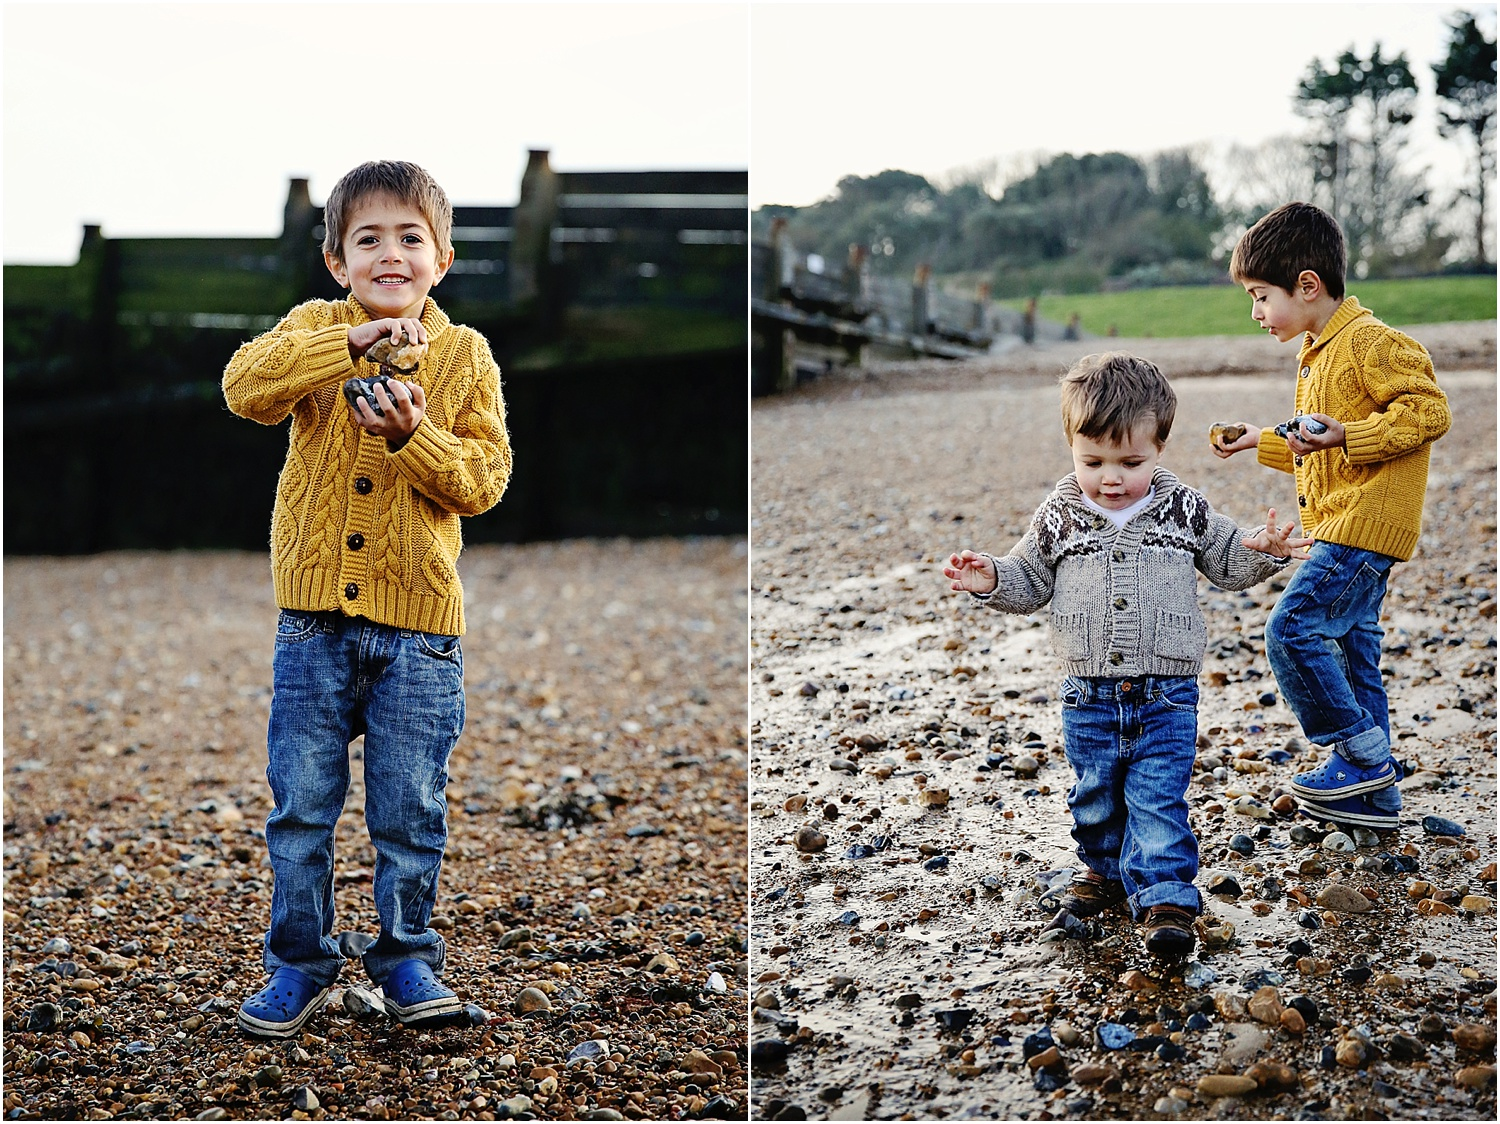 Whitstable beach photography family child brothers boys playing